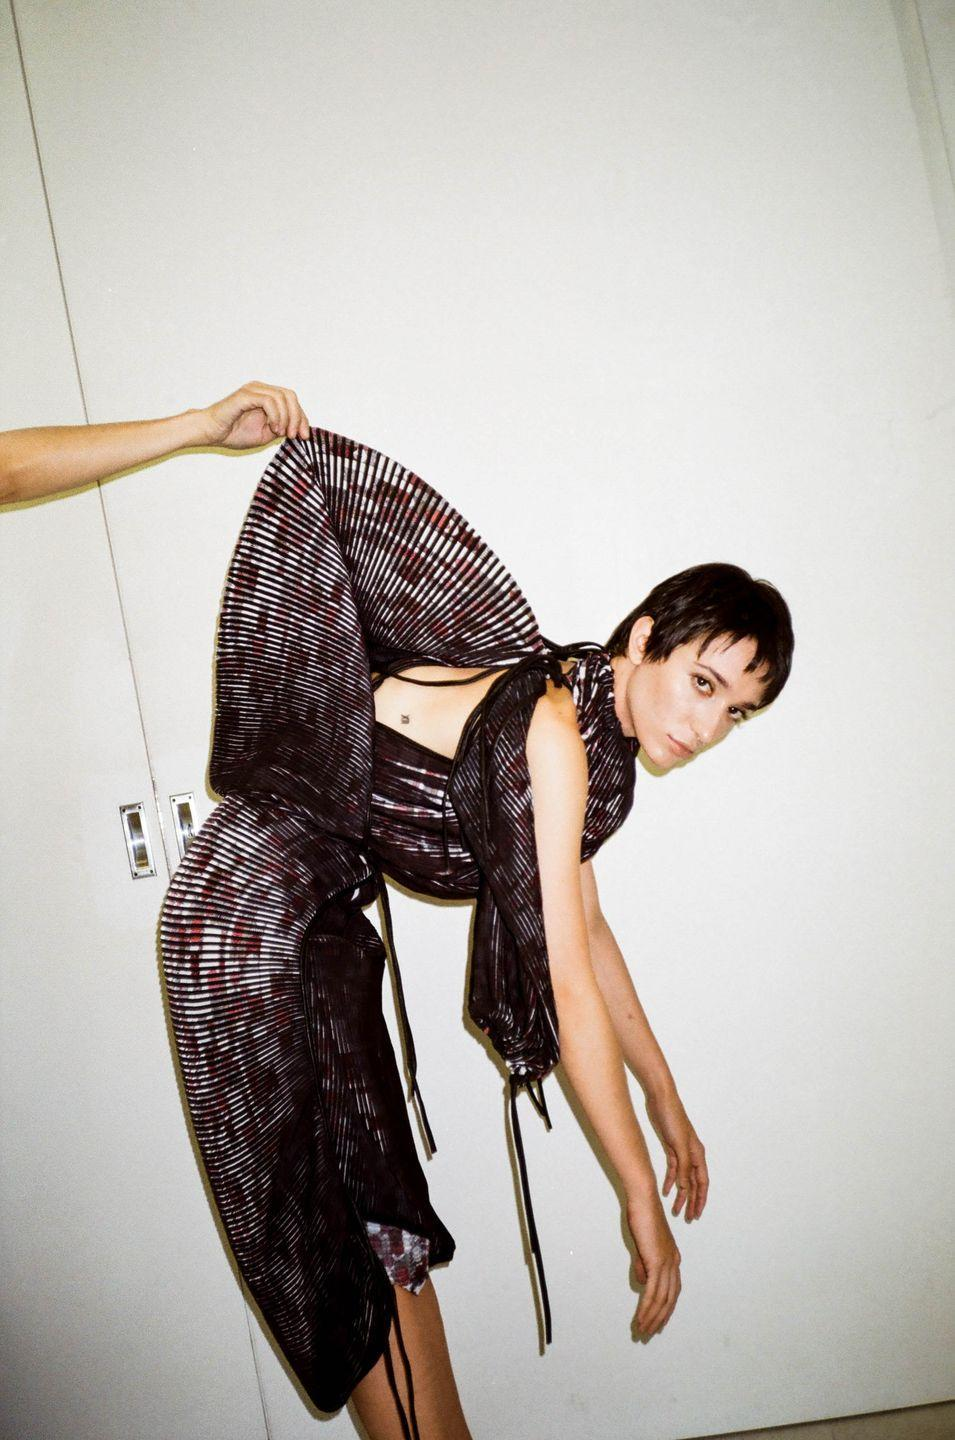 <p>Tramando is an award-winning Argentine brand helmed by designer Martín Churba. His designs celebrate the delicate relationship between art, design, and fashion, and are crafted with the urban and independent woman in mind.<br></p>